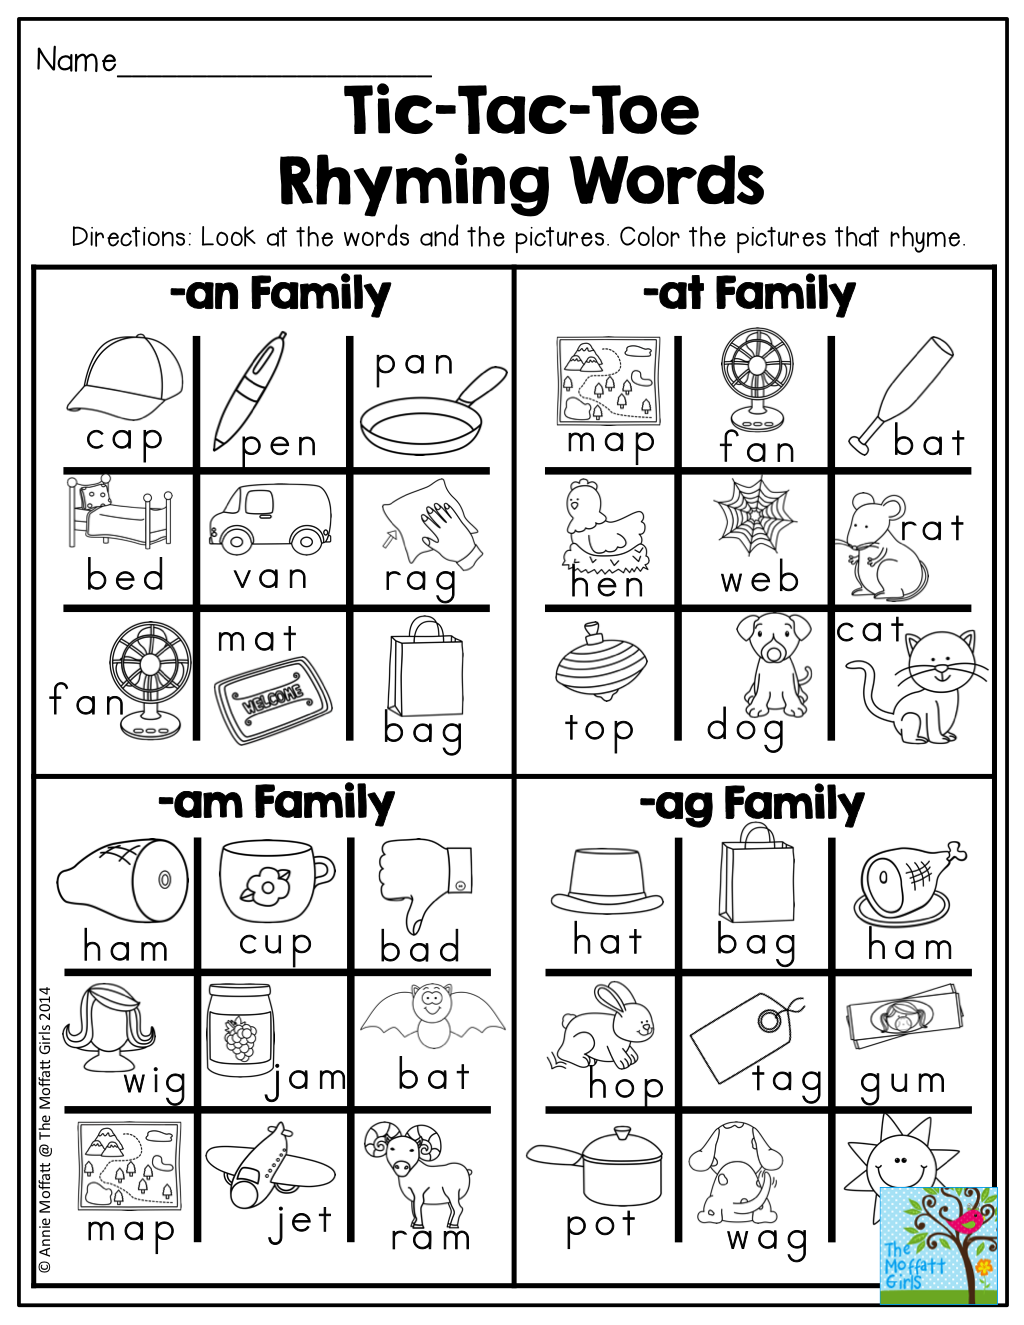 Tic Tac Toe Rhyming Words Find The Words That Rhyme And Color Tons Of Fun Printables